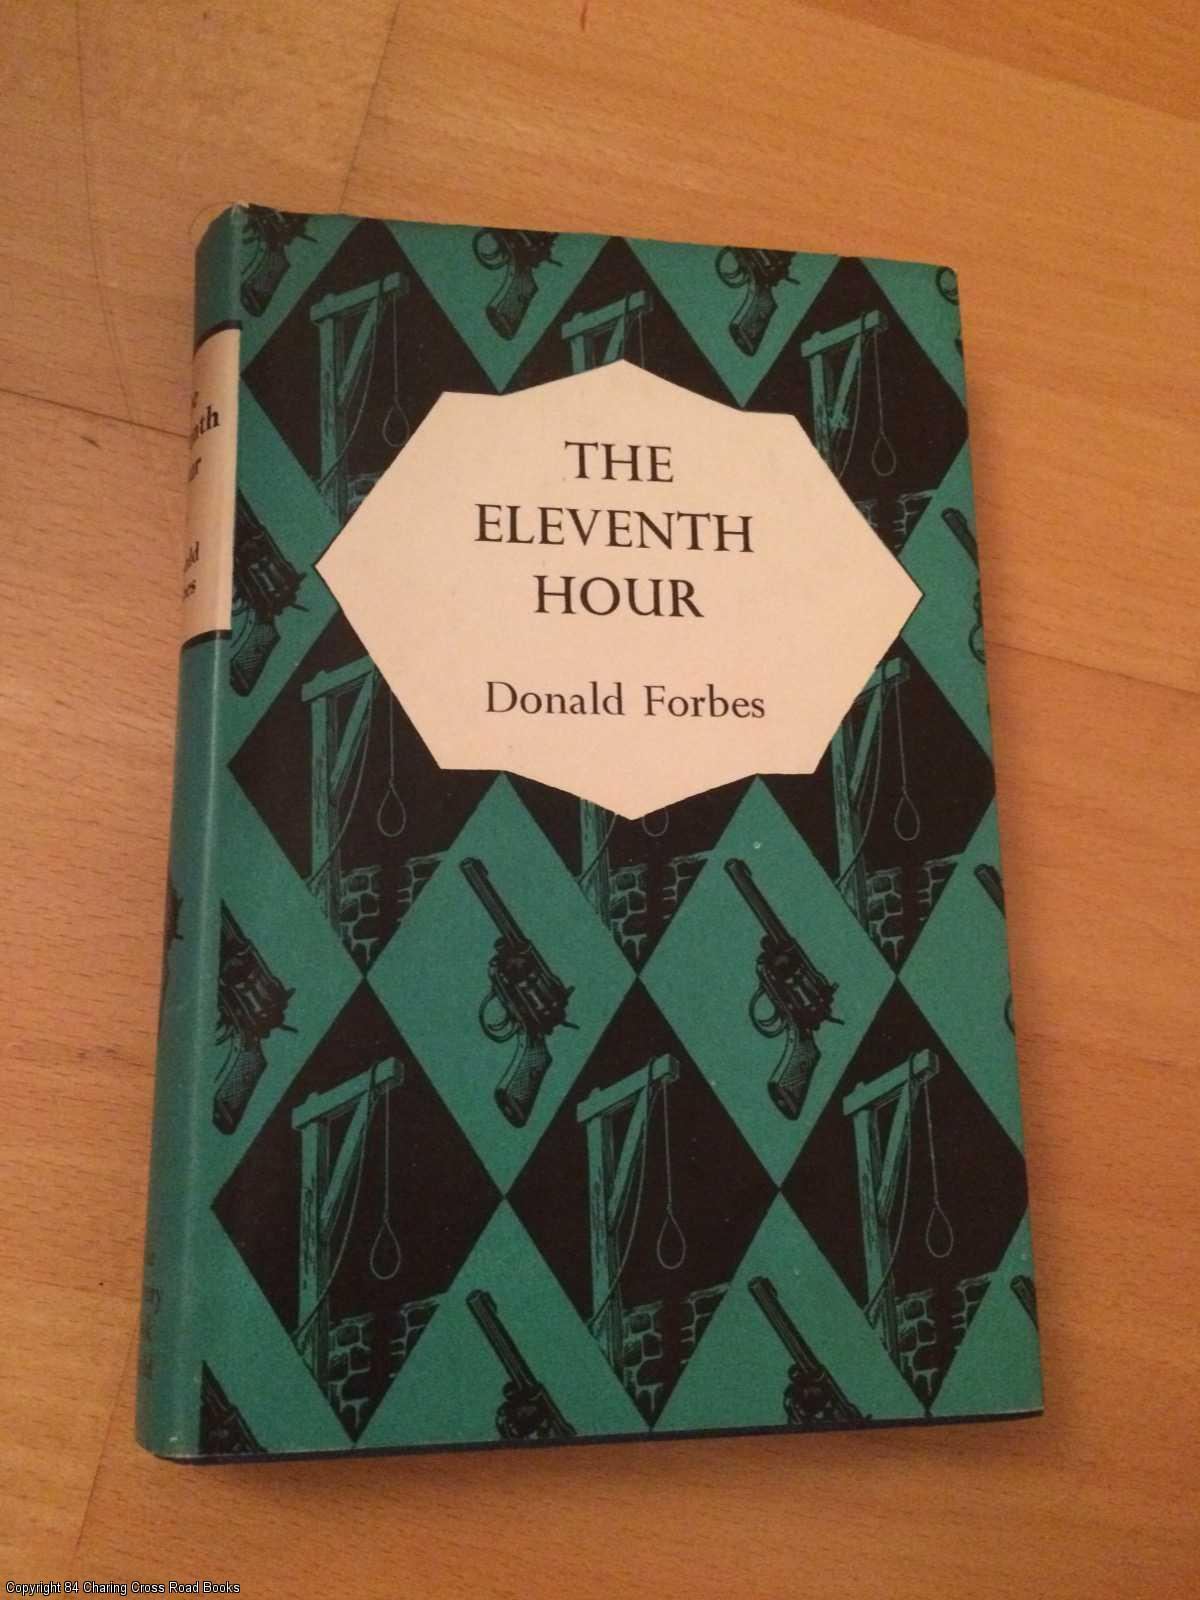 FORBES, DONALD - The Eleventh Hour